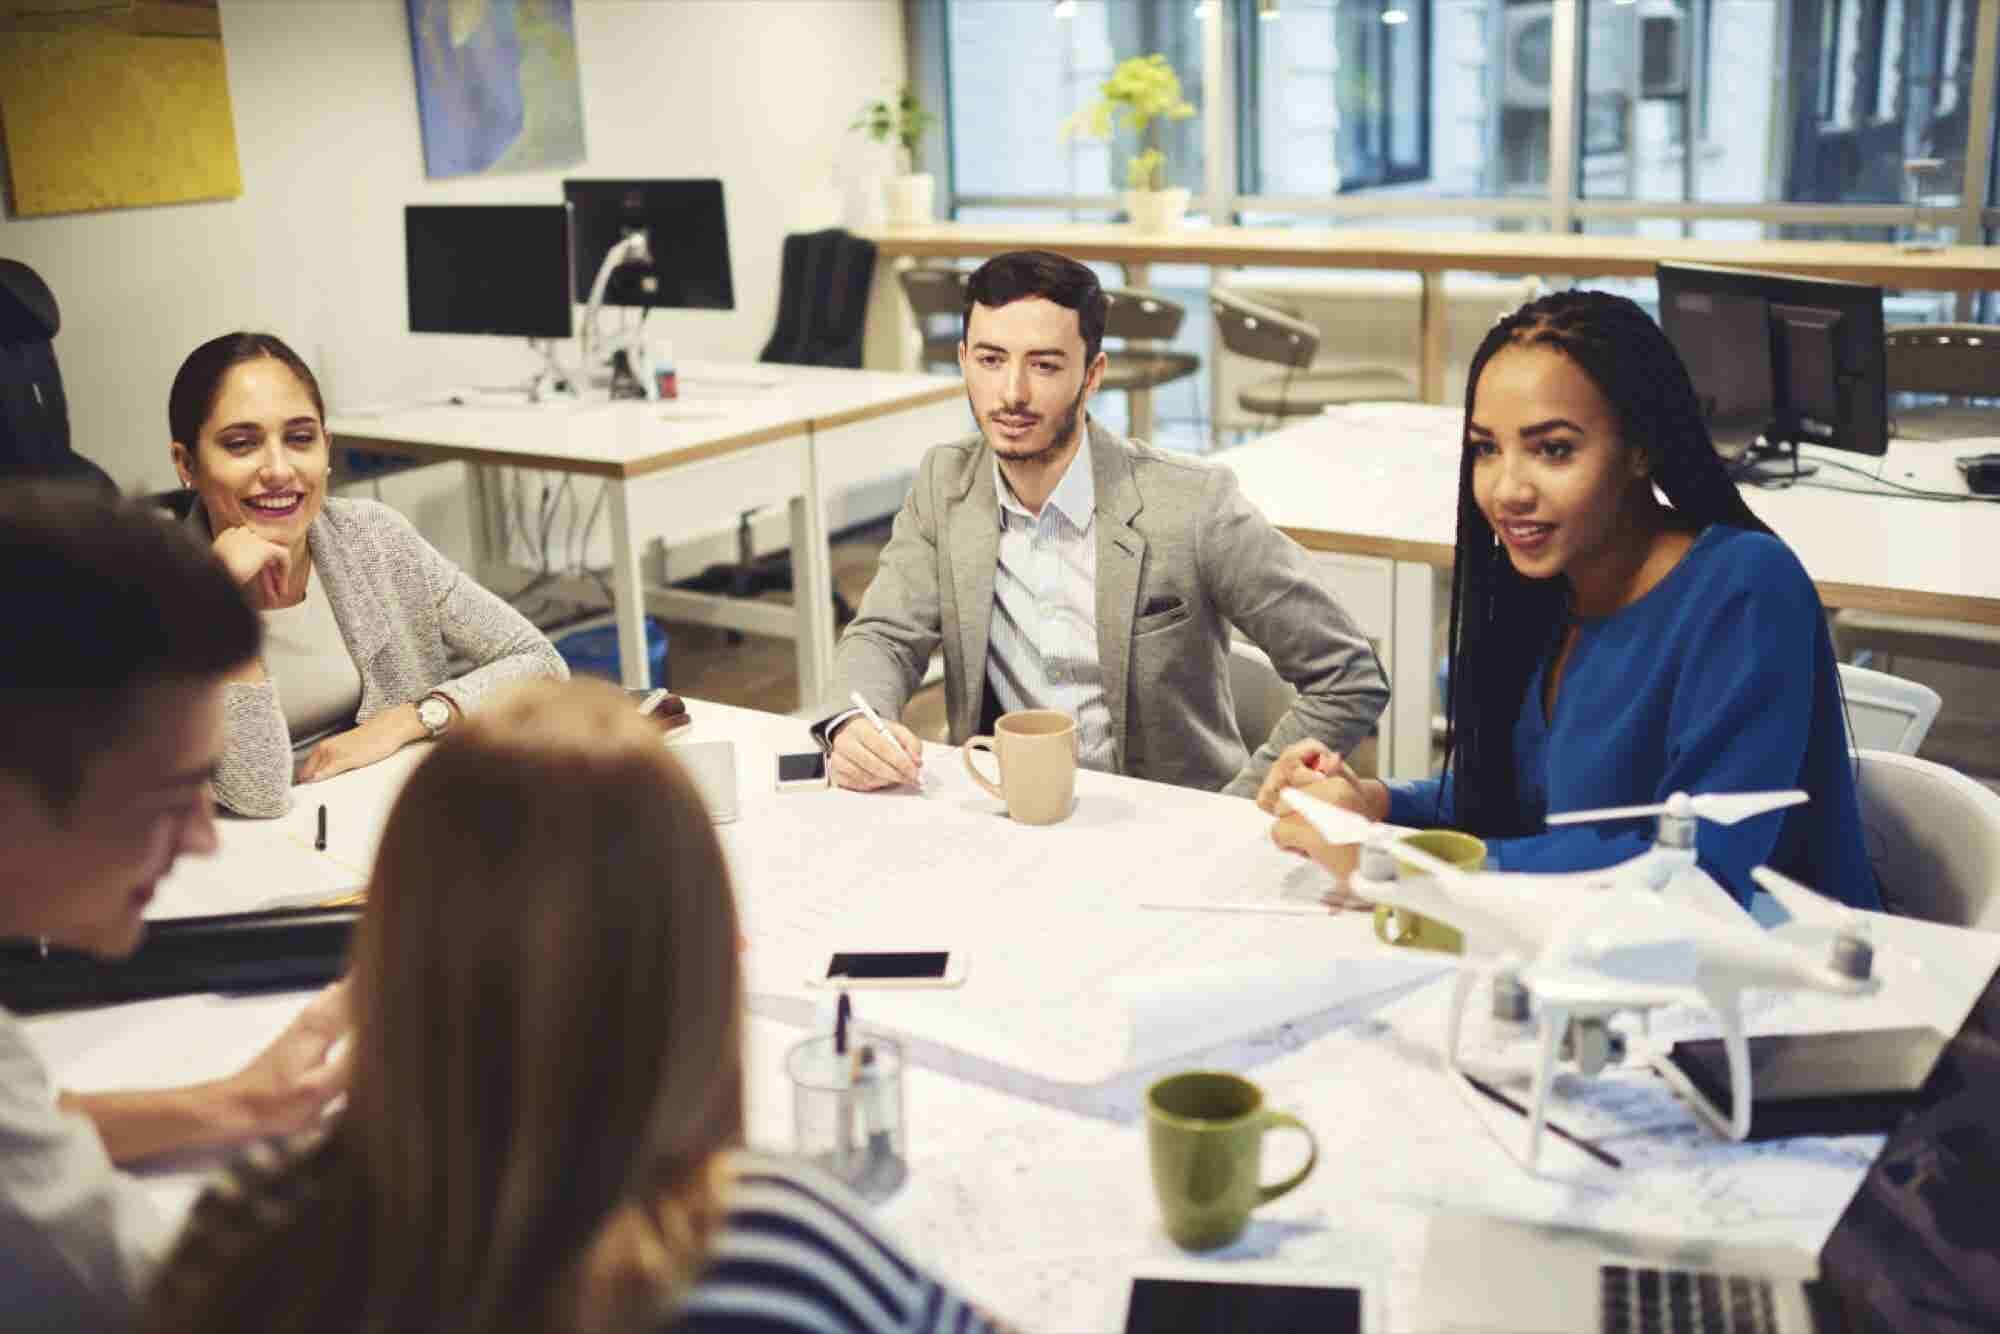 How to Bring in Diversity in Your Organisation